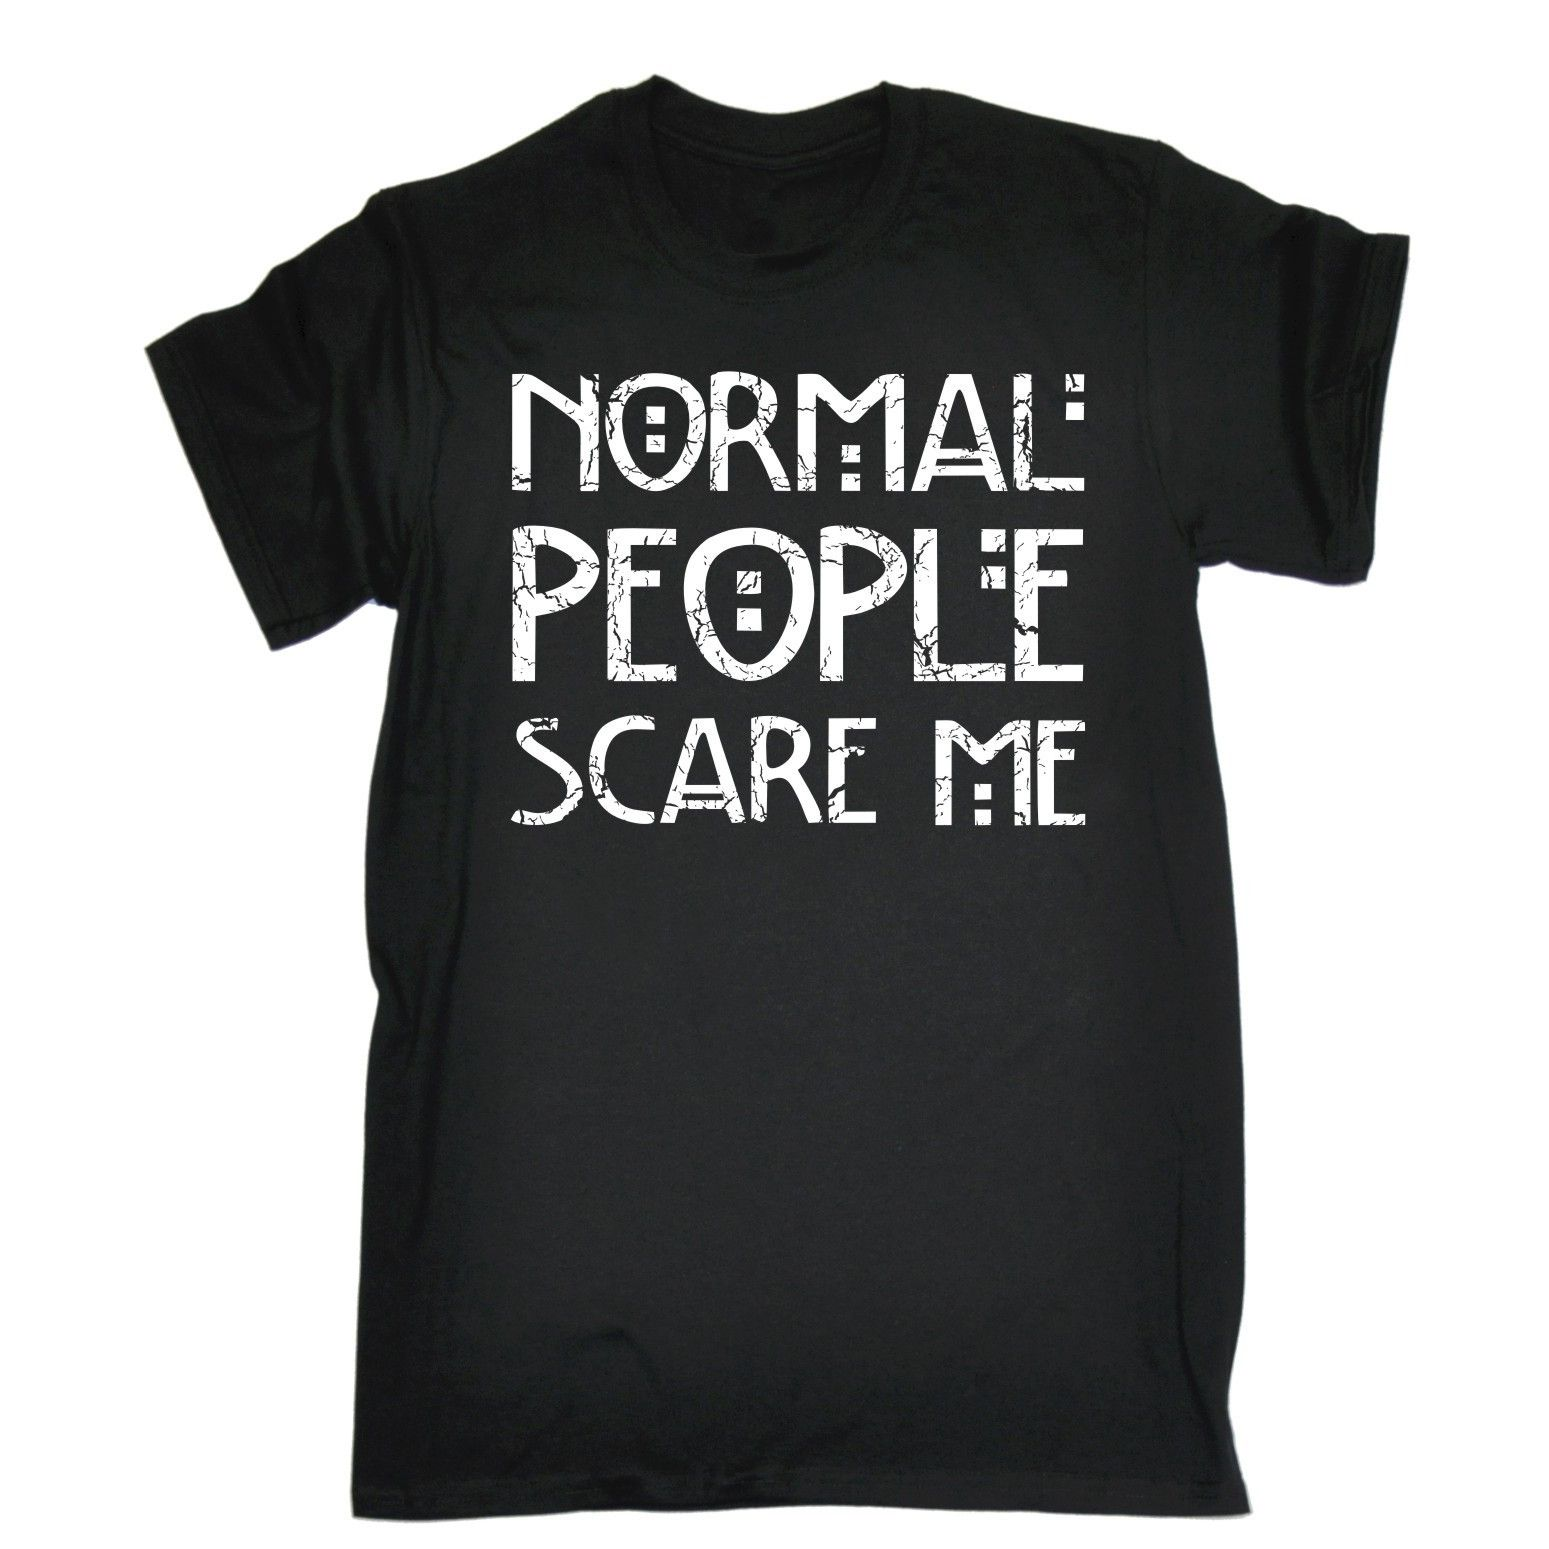 mens hairstyles NORMAL PEOPLE SCARE ME T-SHIRT Emo Introvert Rude Punk Rock  Funny Birthday Gift Casual T Shirt Male Short Sleeve Pattern * AliExpress  ...